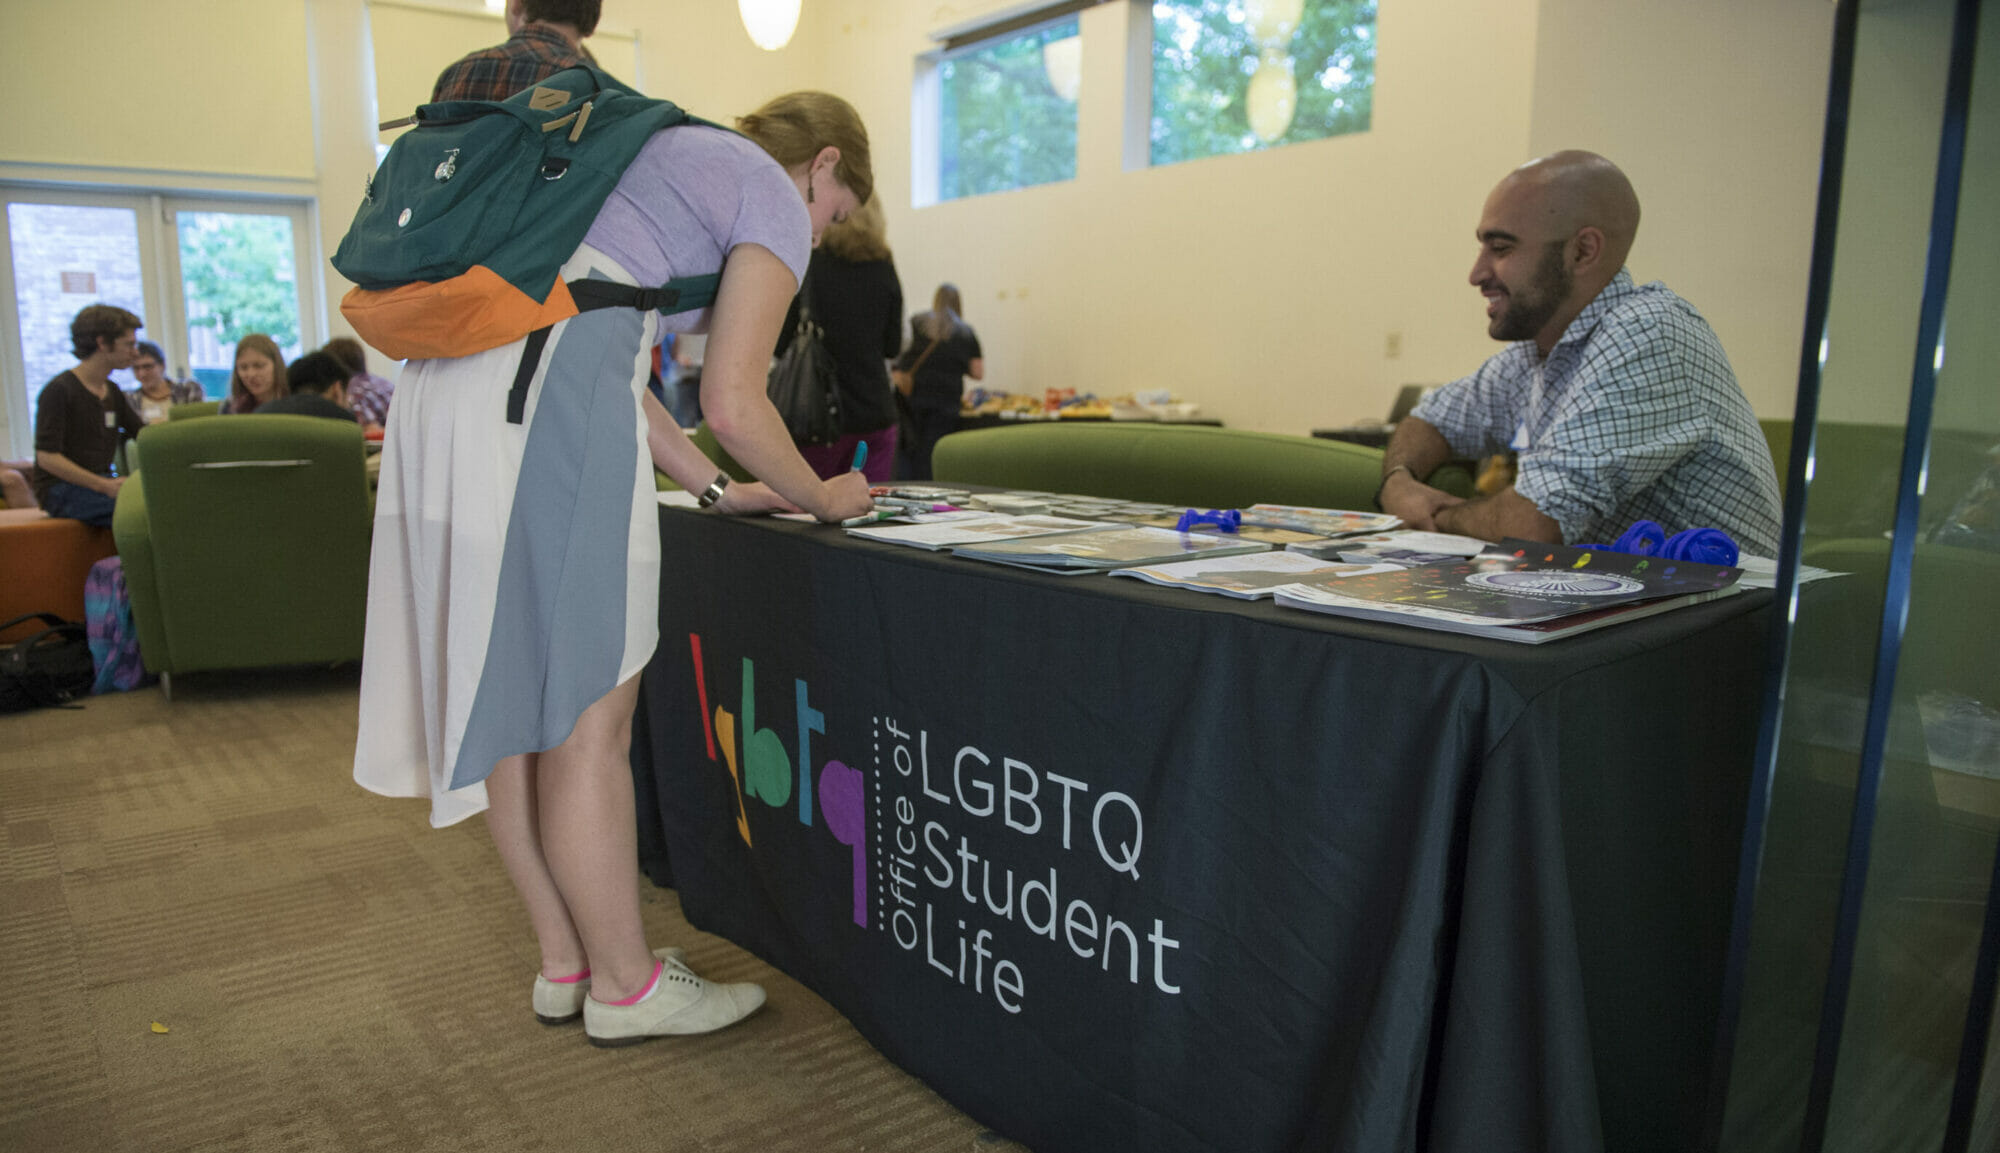 A student wearing a backpack writes a nametag at a check-in table with the LGBTQ Student Life logo